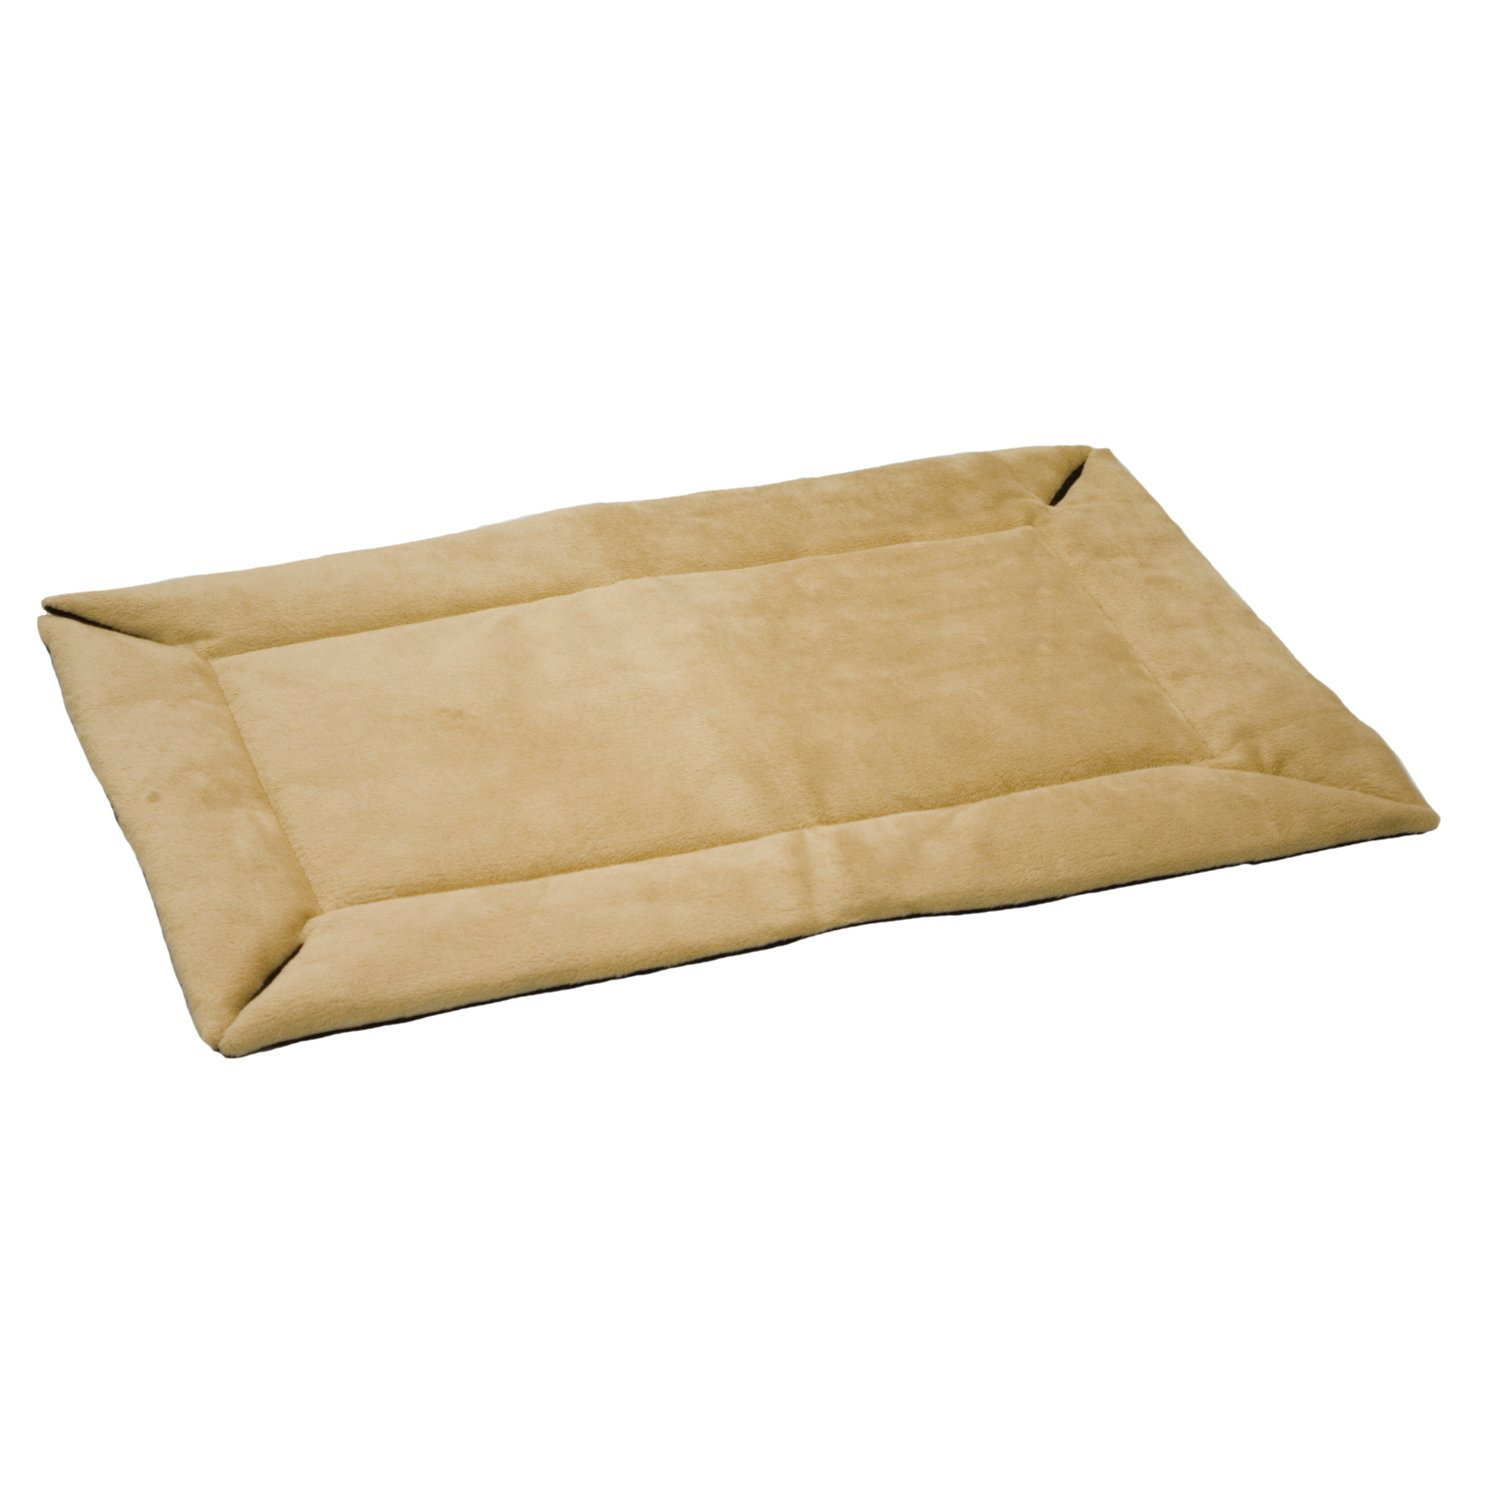 K&H Pet Products Crate Pad for Pets